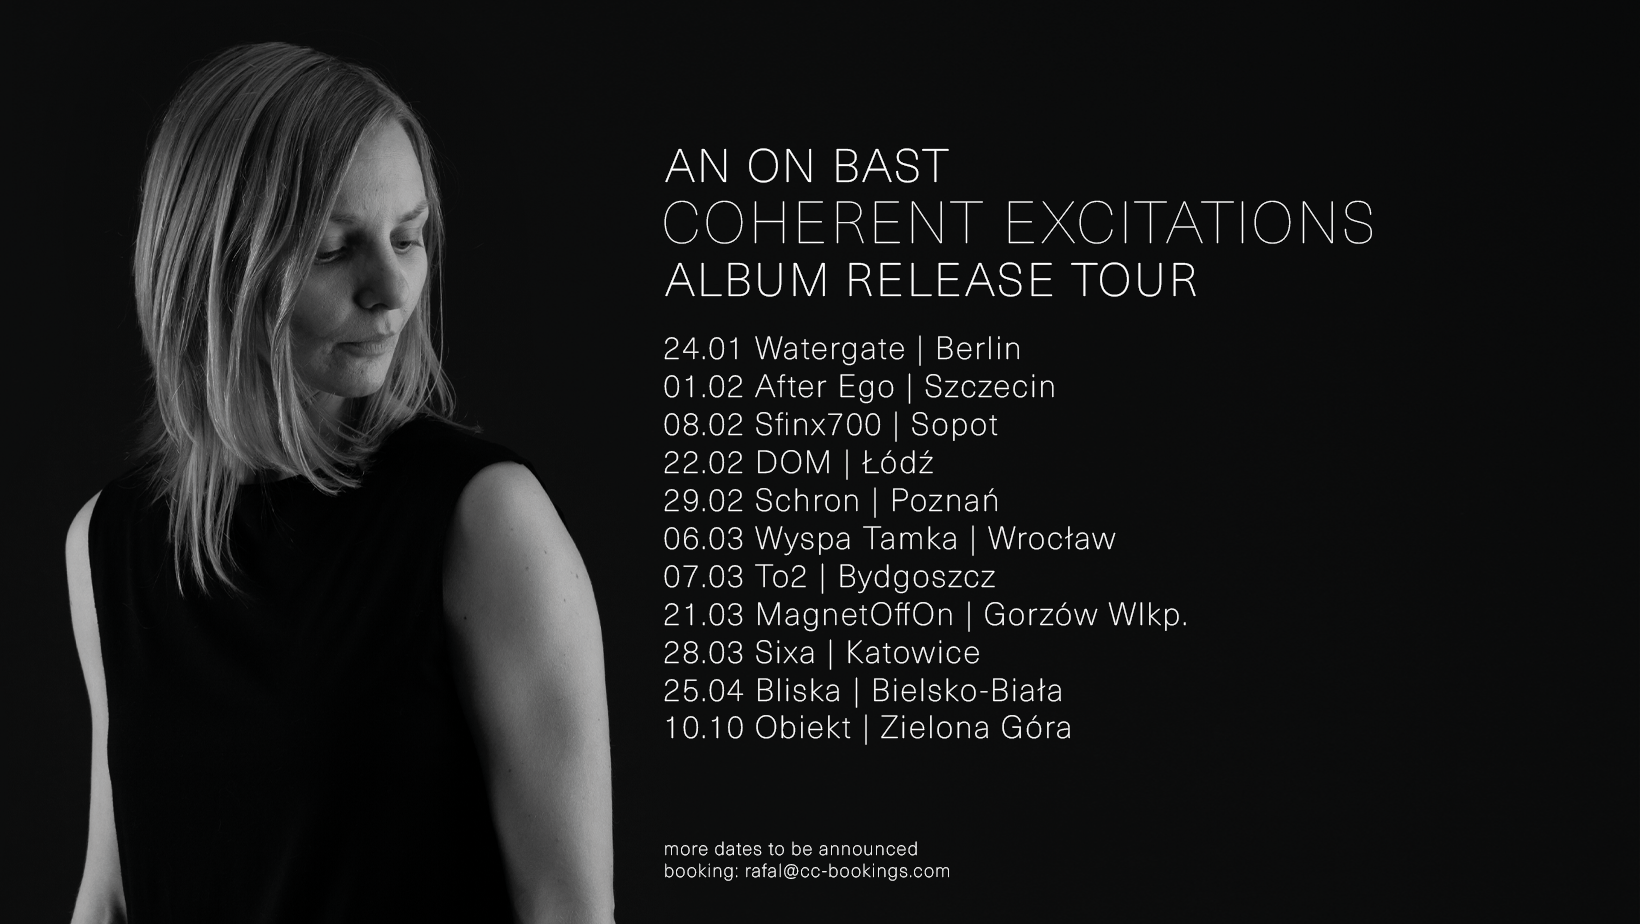 An On Bast - Coherent Excitations - Album Release Tour